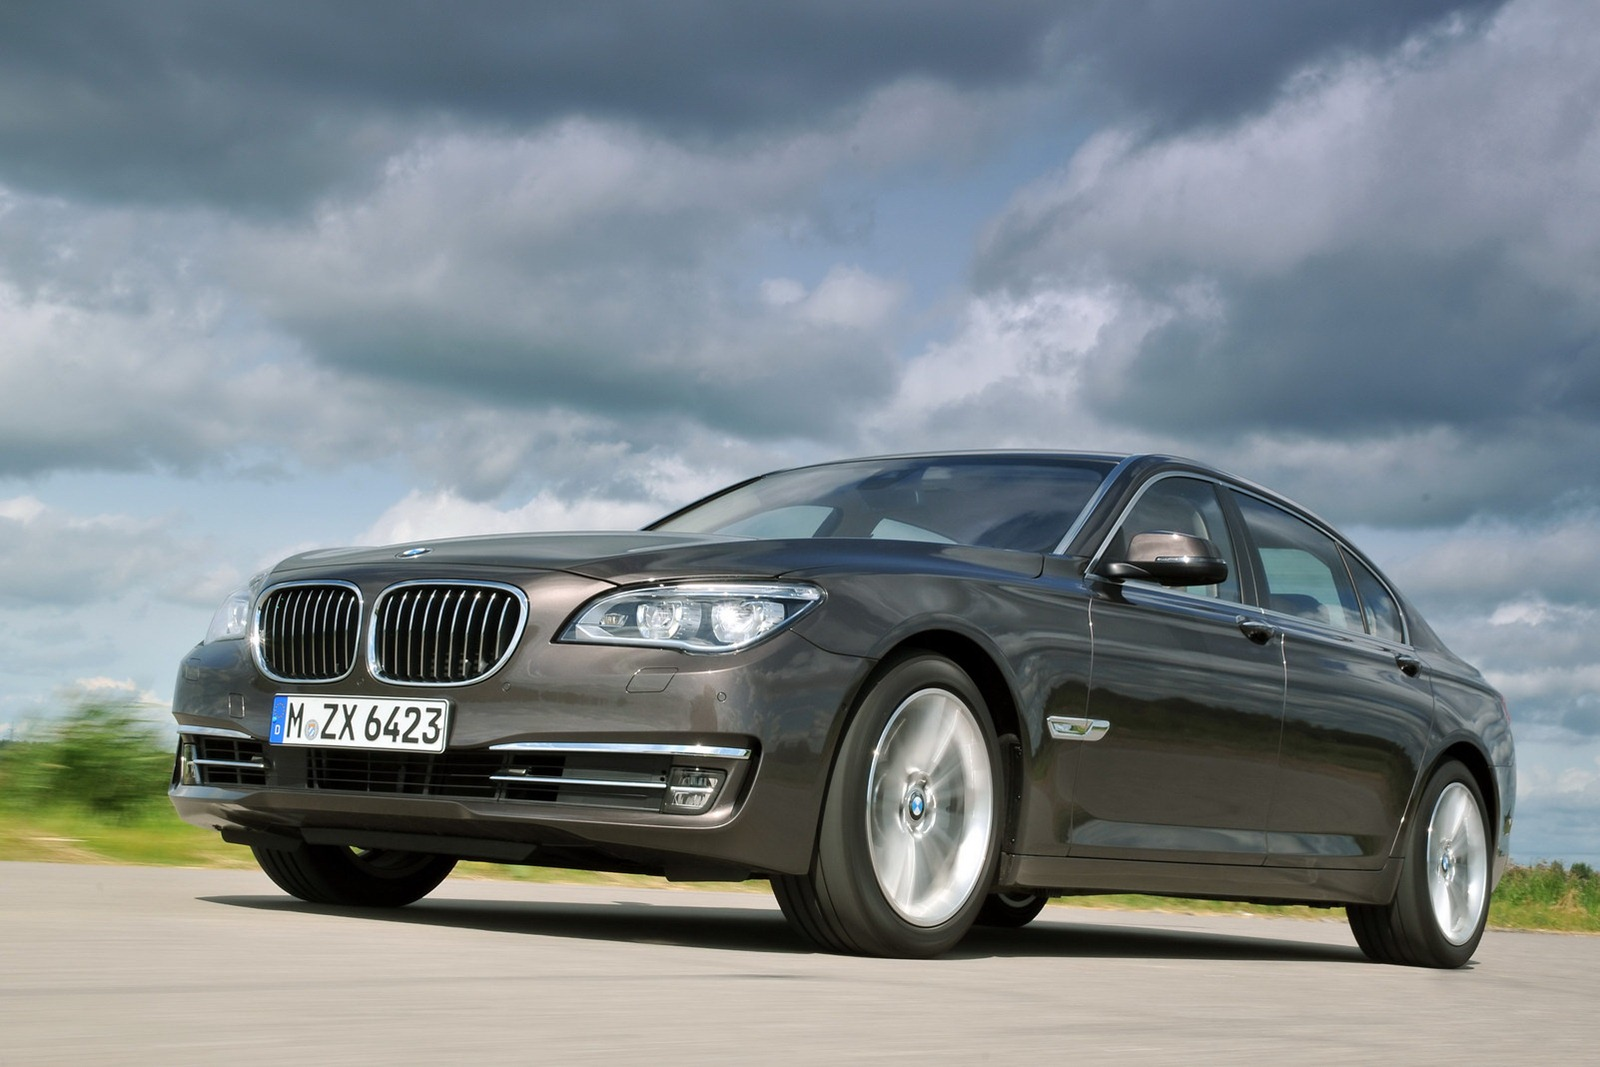 BMW 7 series 740Li 2013 photo - 5